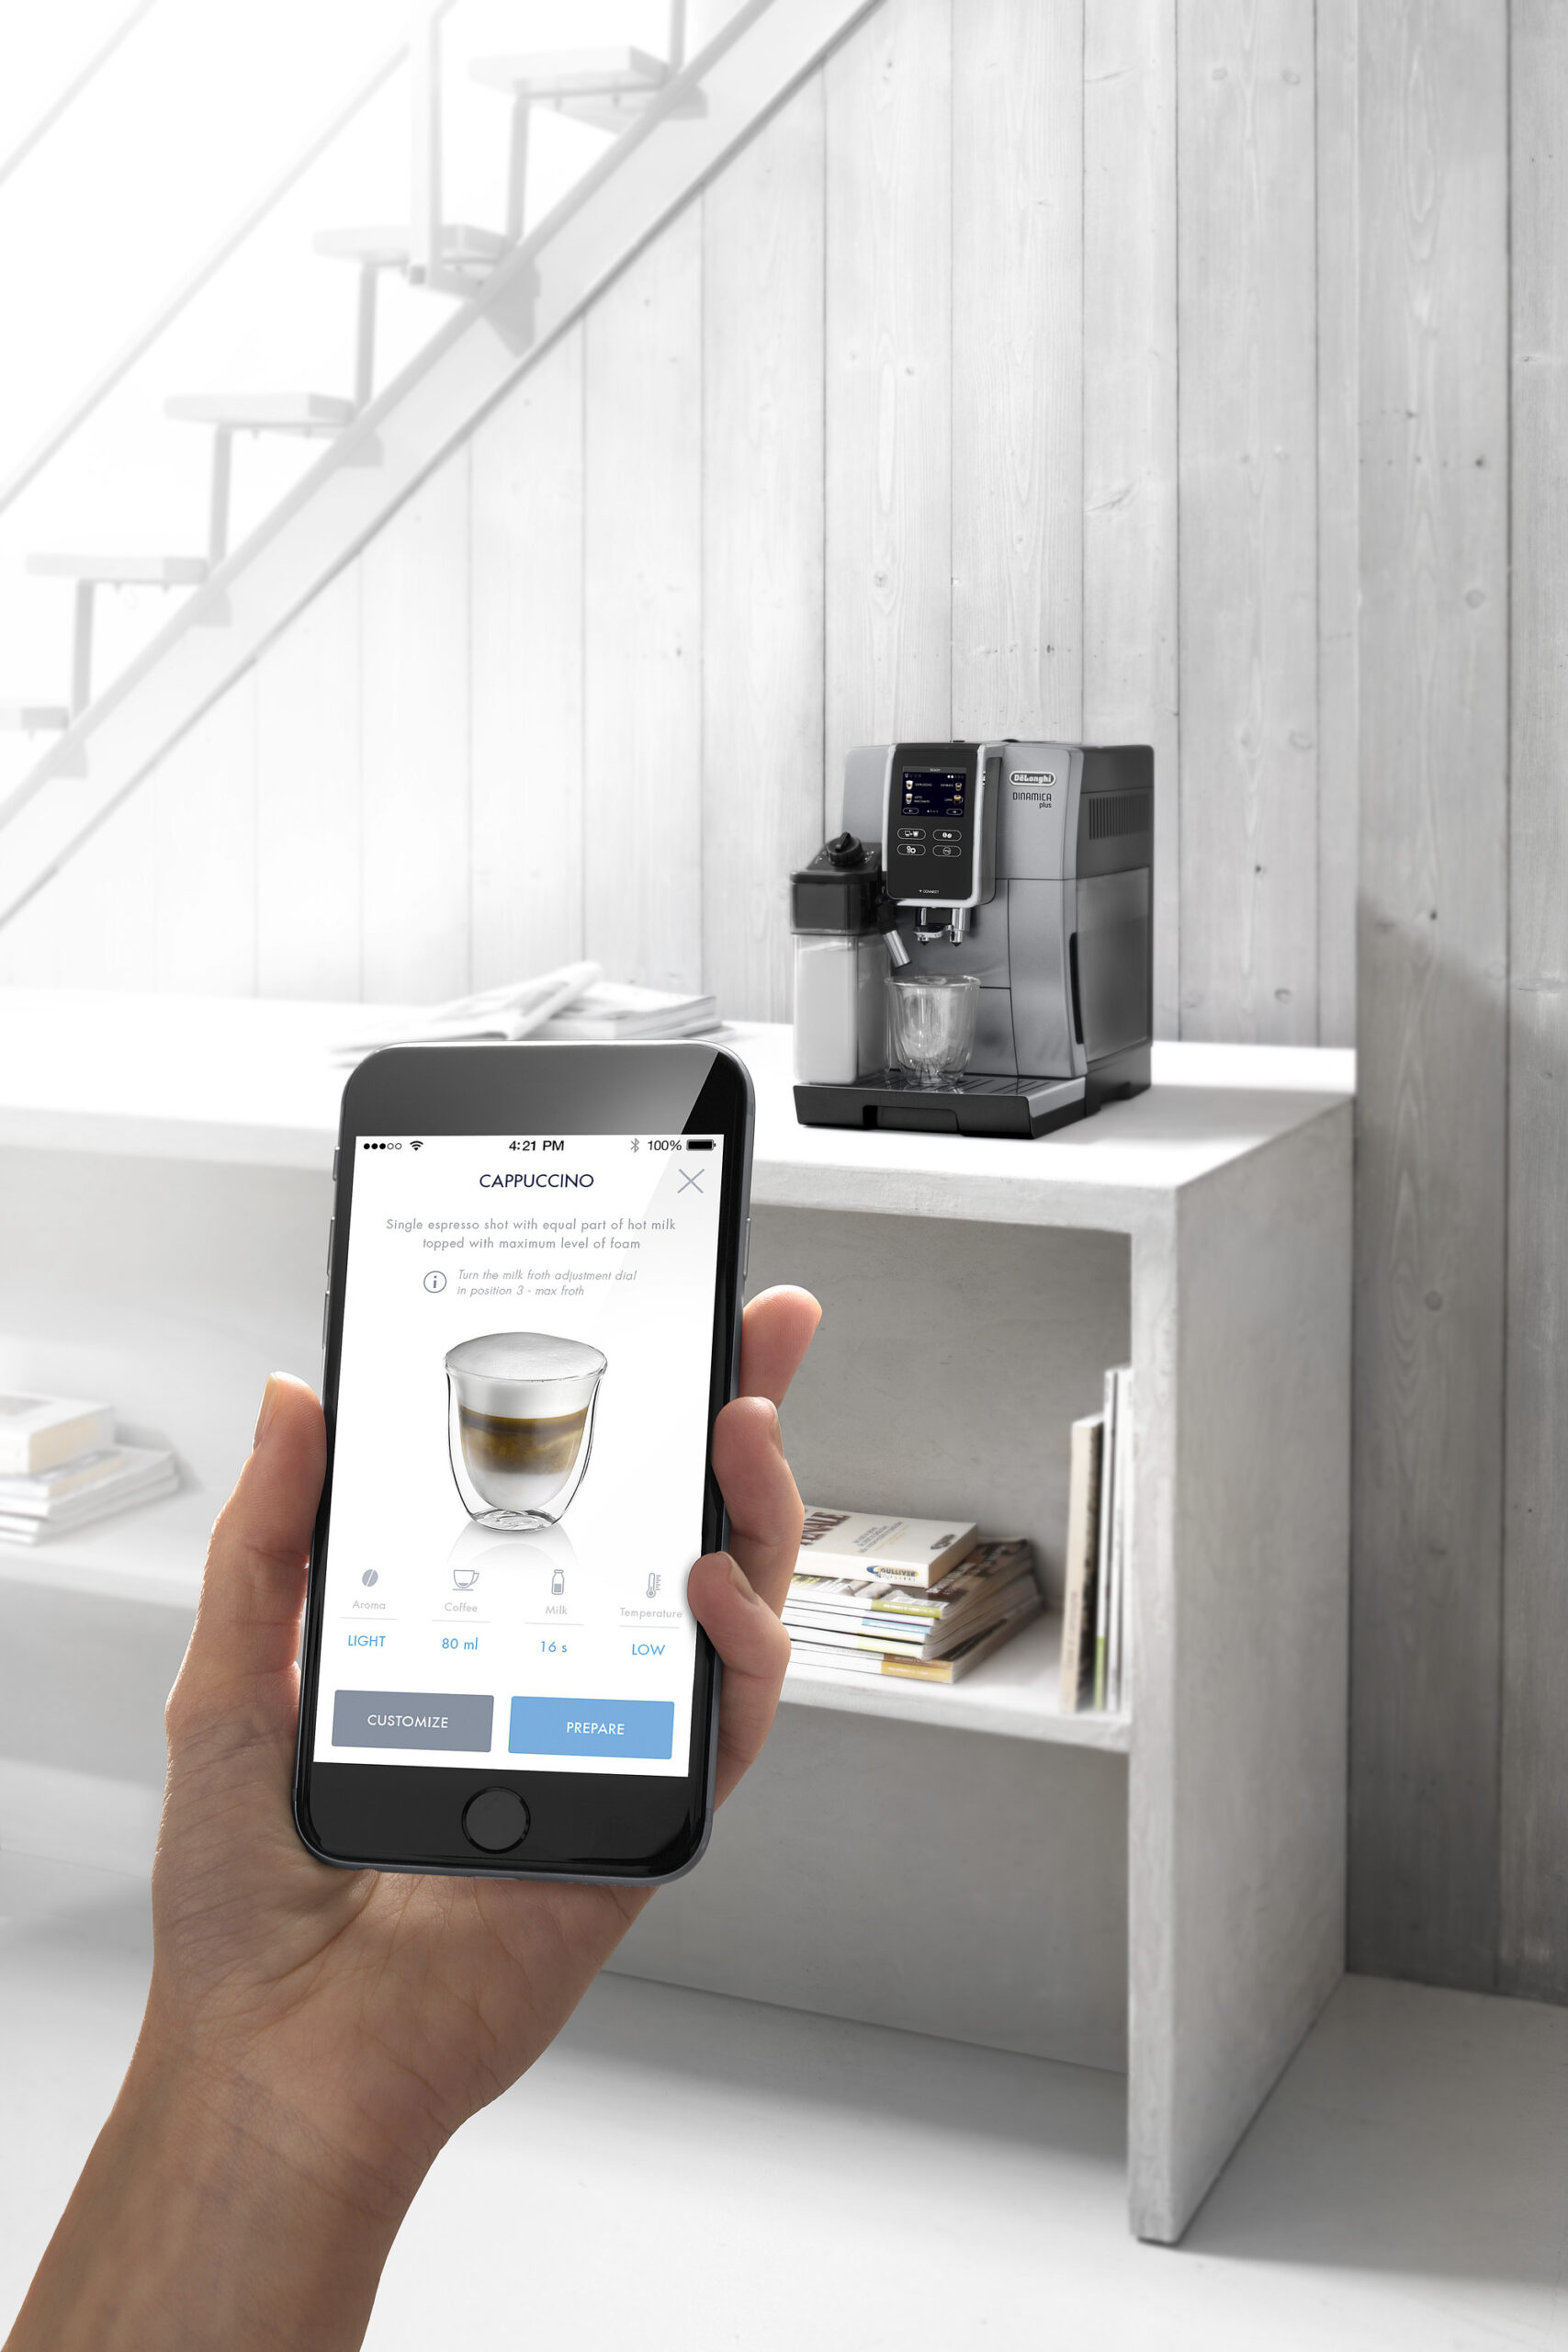 a person holding up a phone in front of a coffee machine